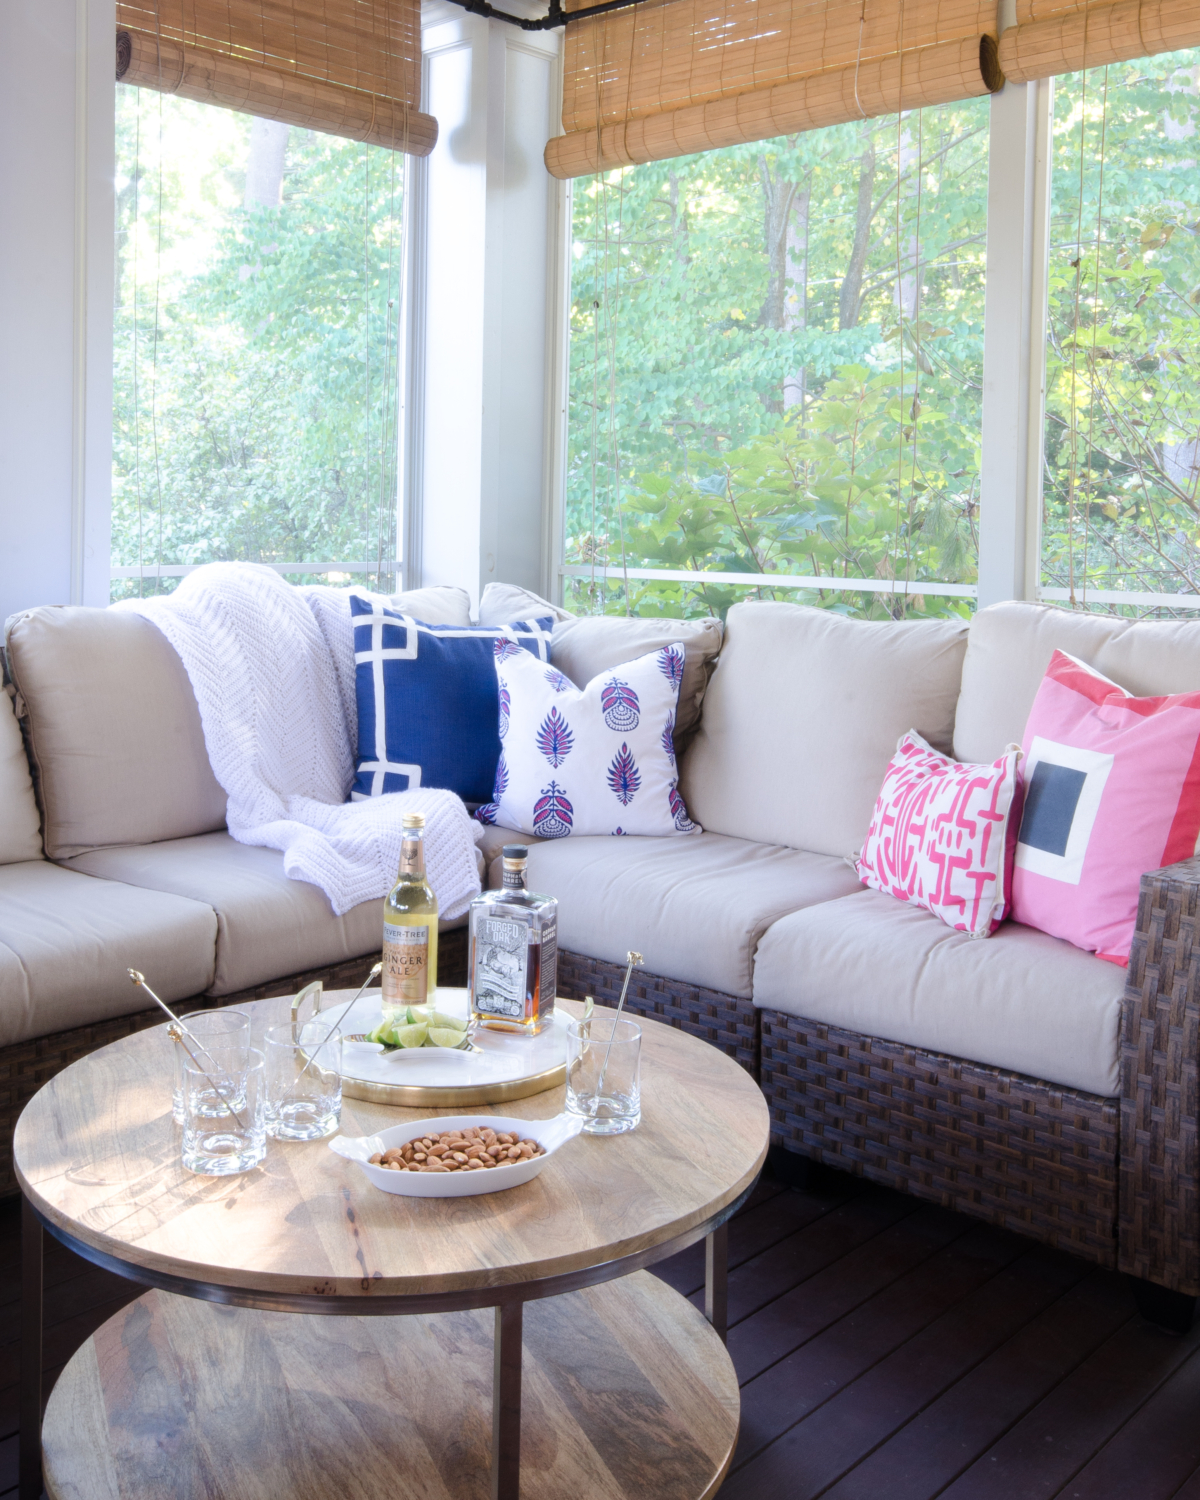 Stunning classic screened porch with pink, navy blue, and white.